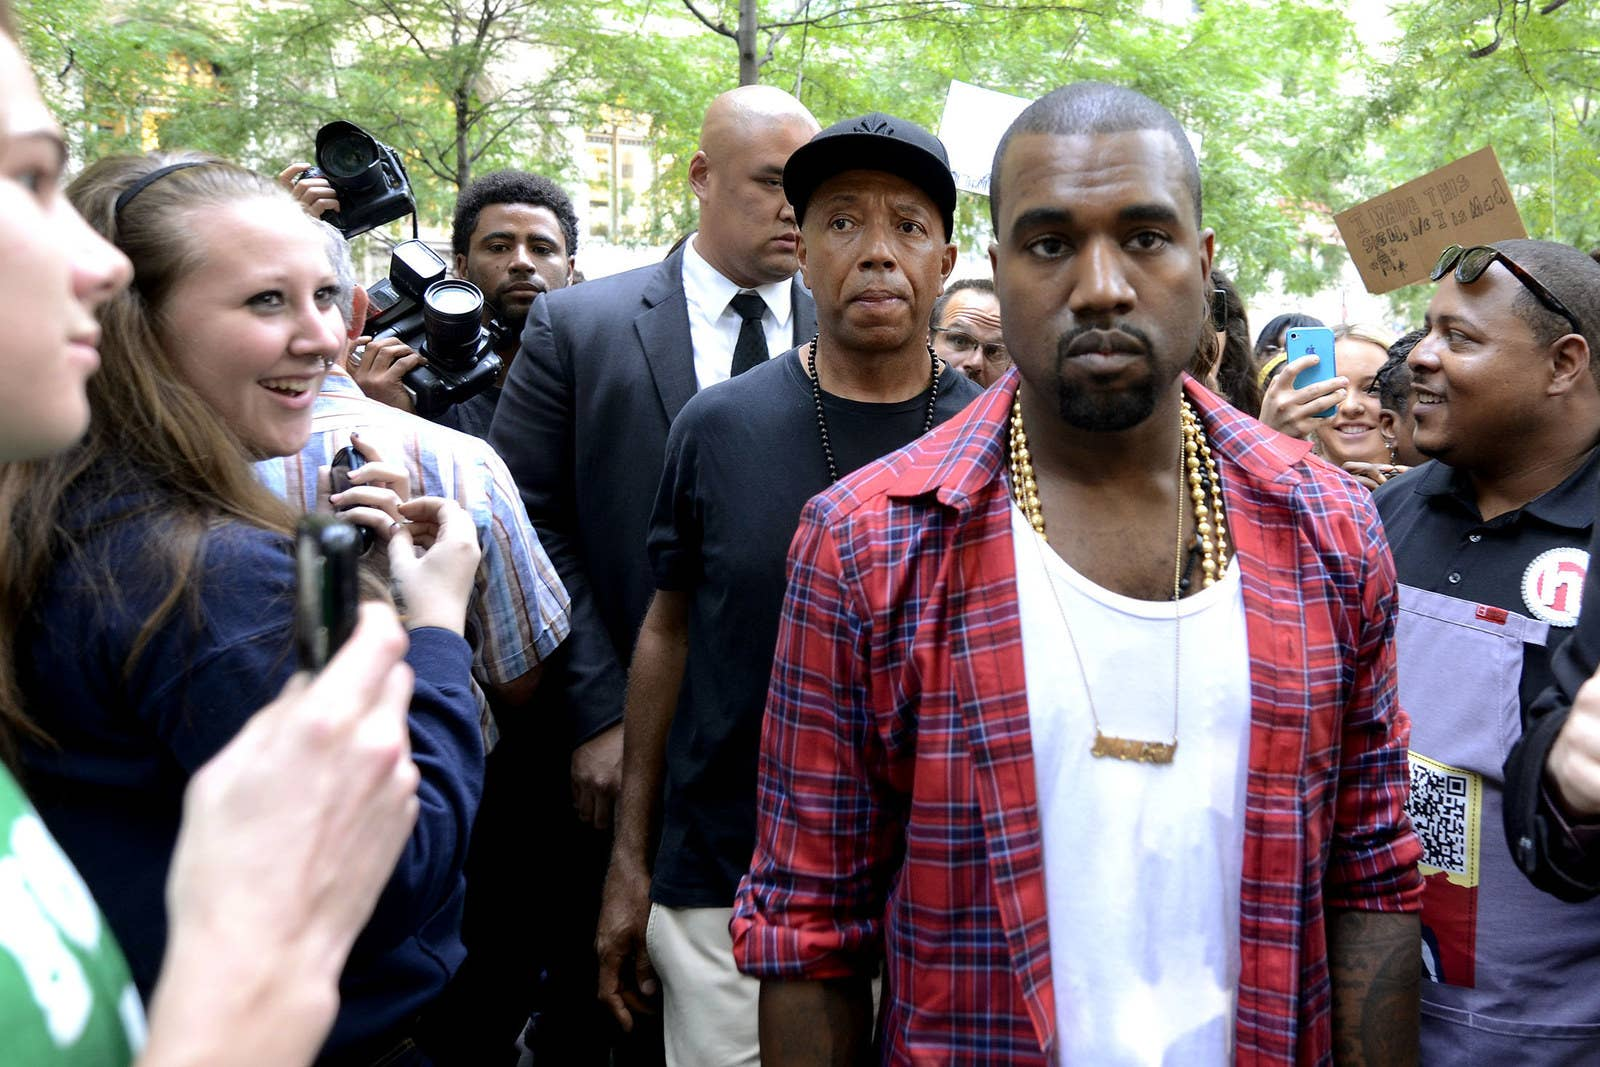 Kanye West and Russell Simmons visit the Zuccotti Park encampment on Oct. 10, 2011.